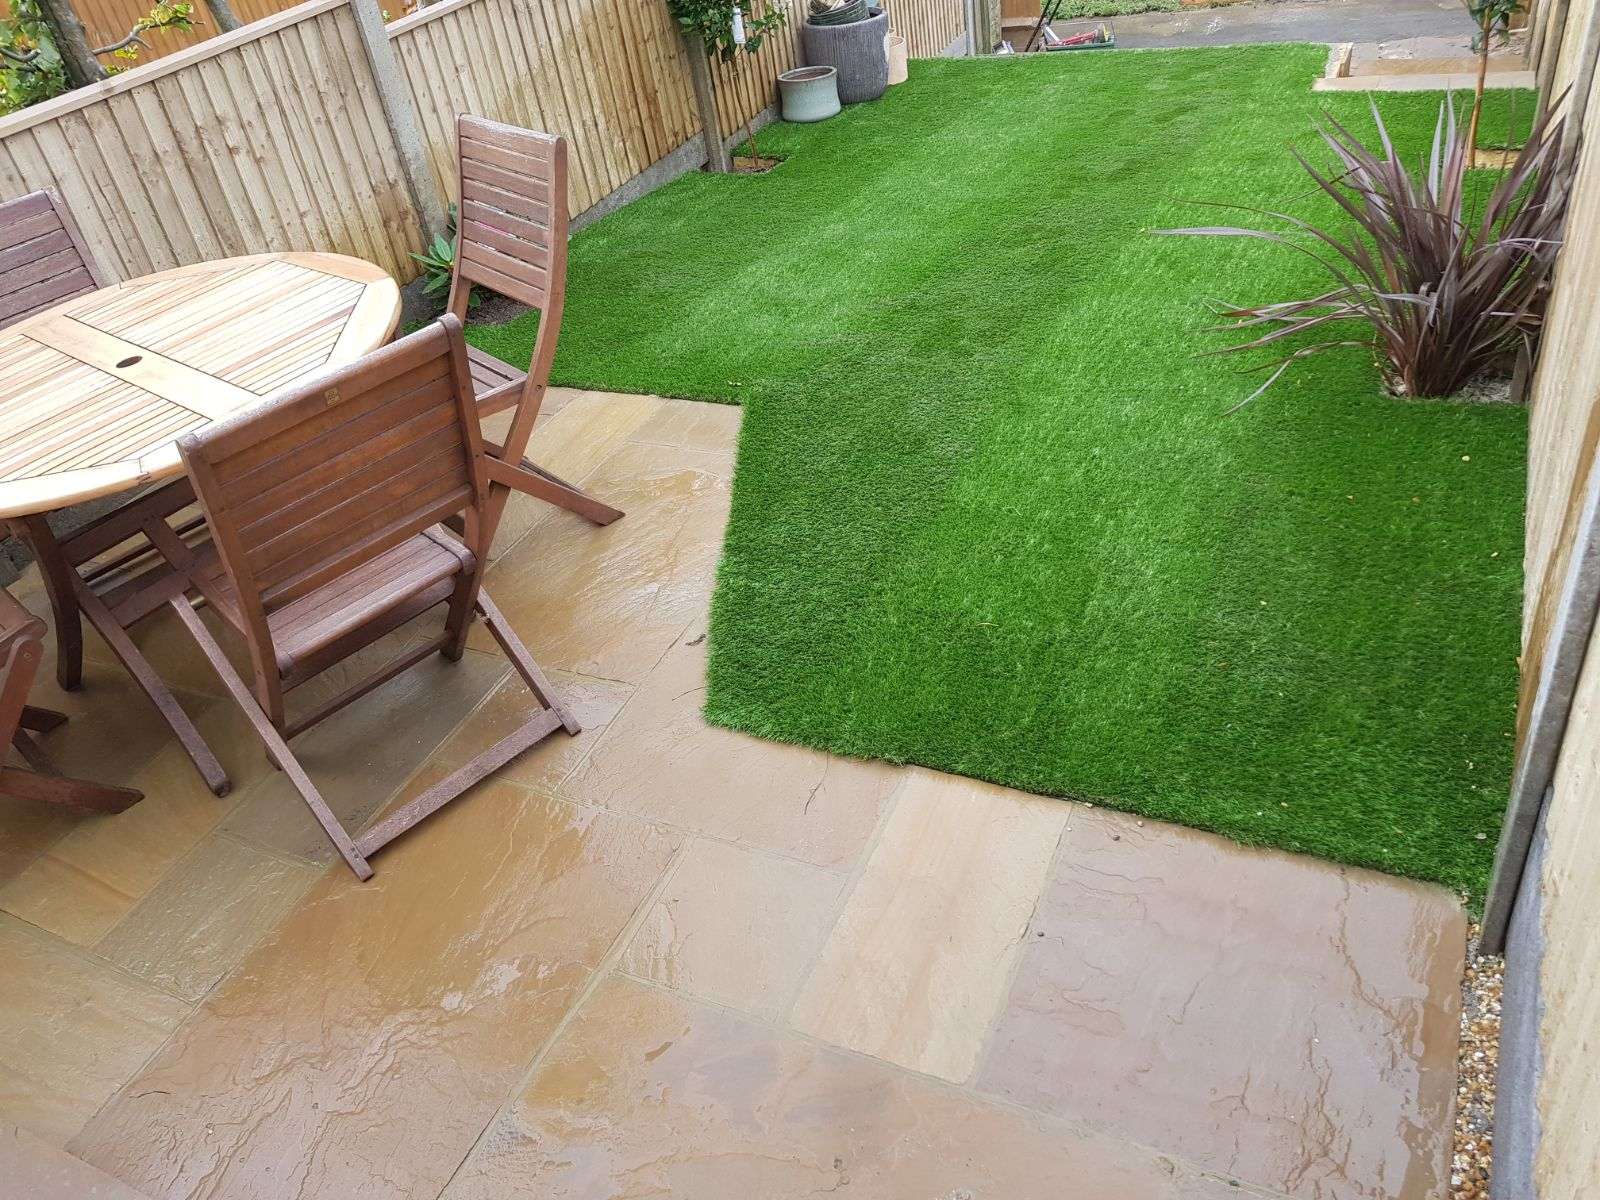 Garden design with patio for outdoor dining and artificial grass